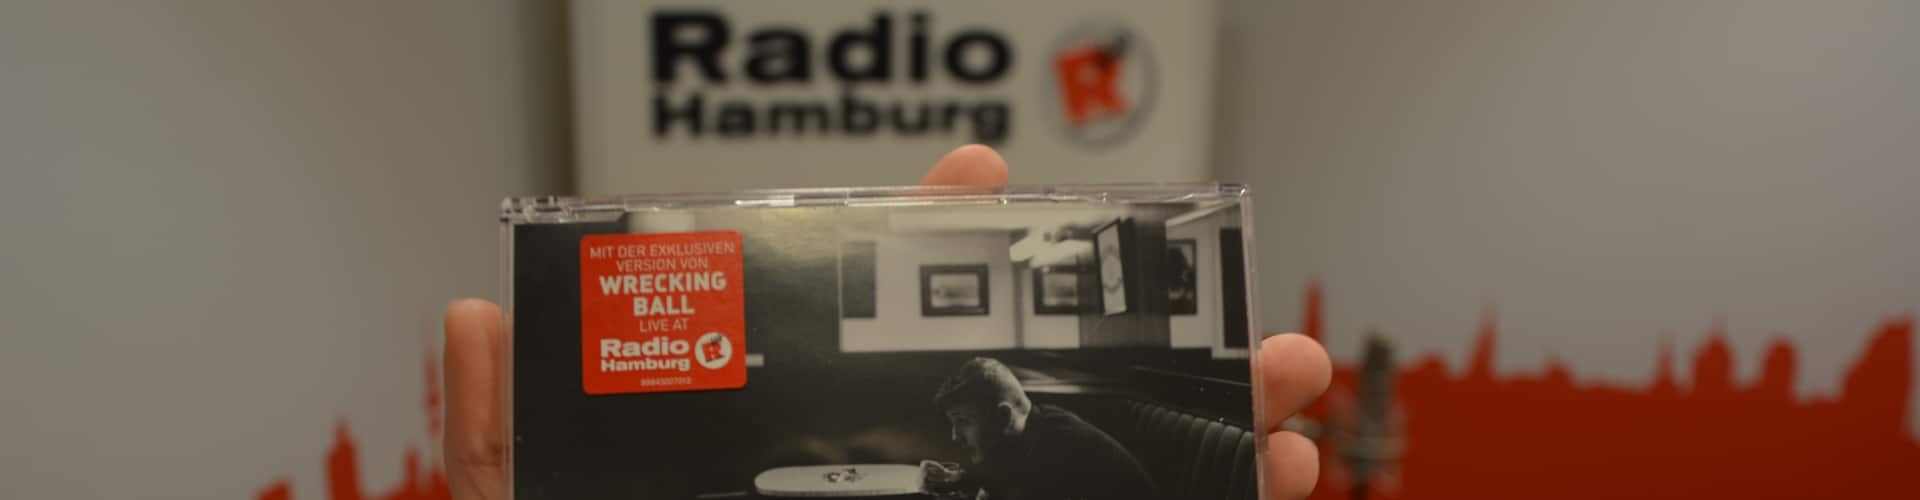 James Arthur CD mit dem Cover-Song aus der Radio Hamburg Live-Lounge.